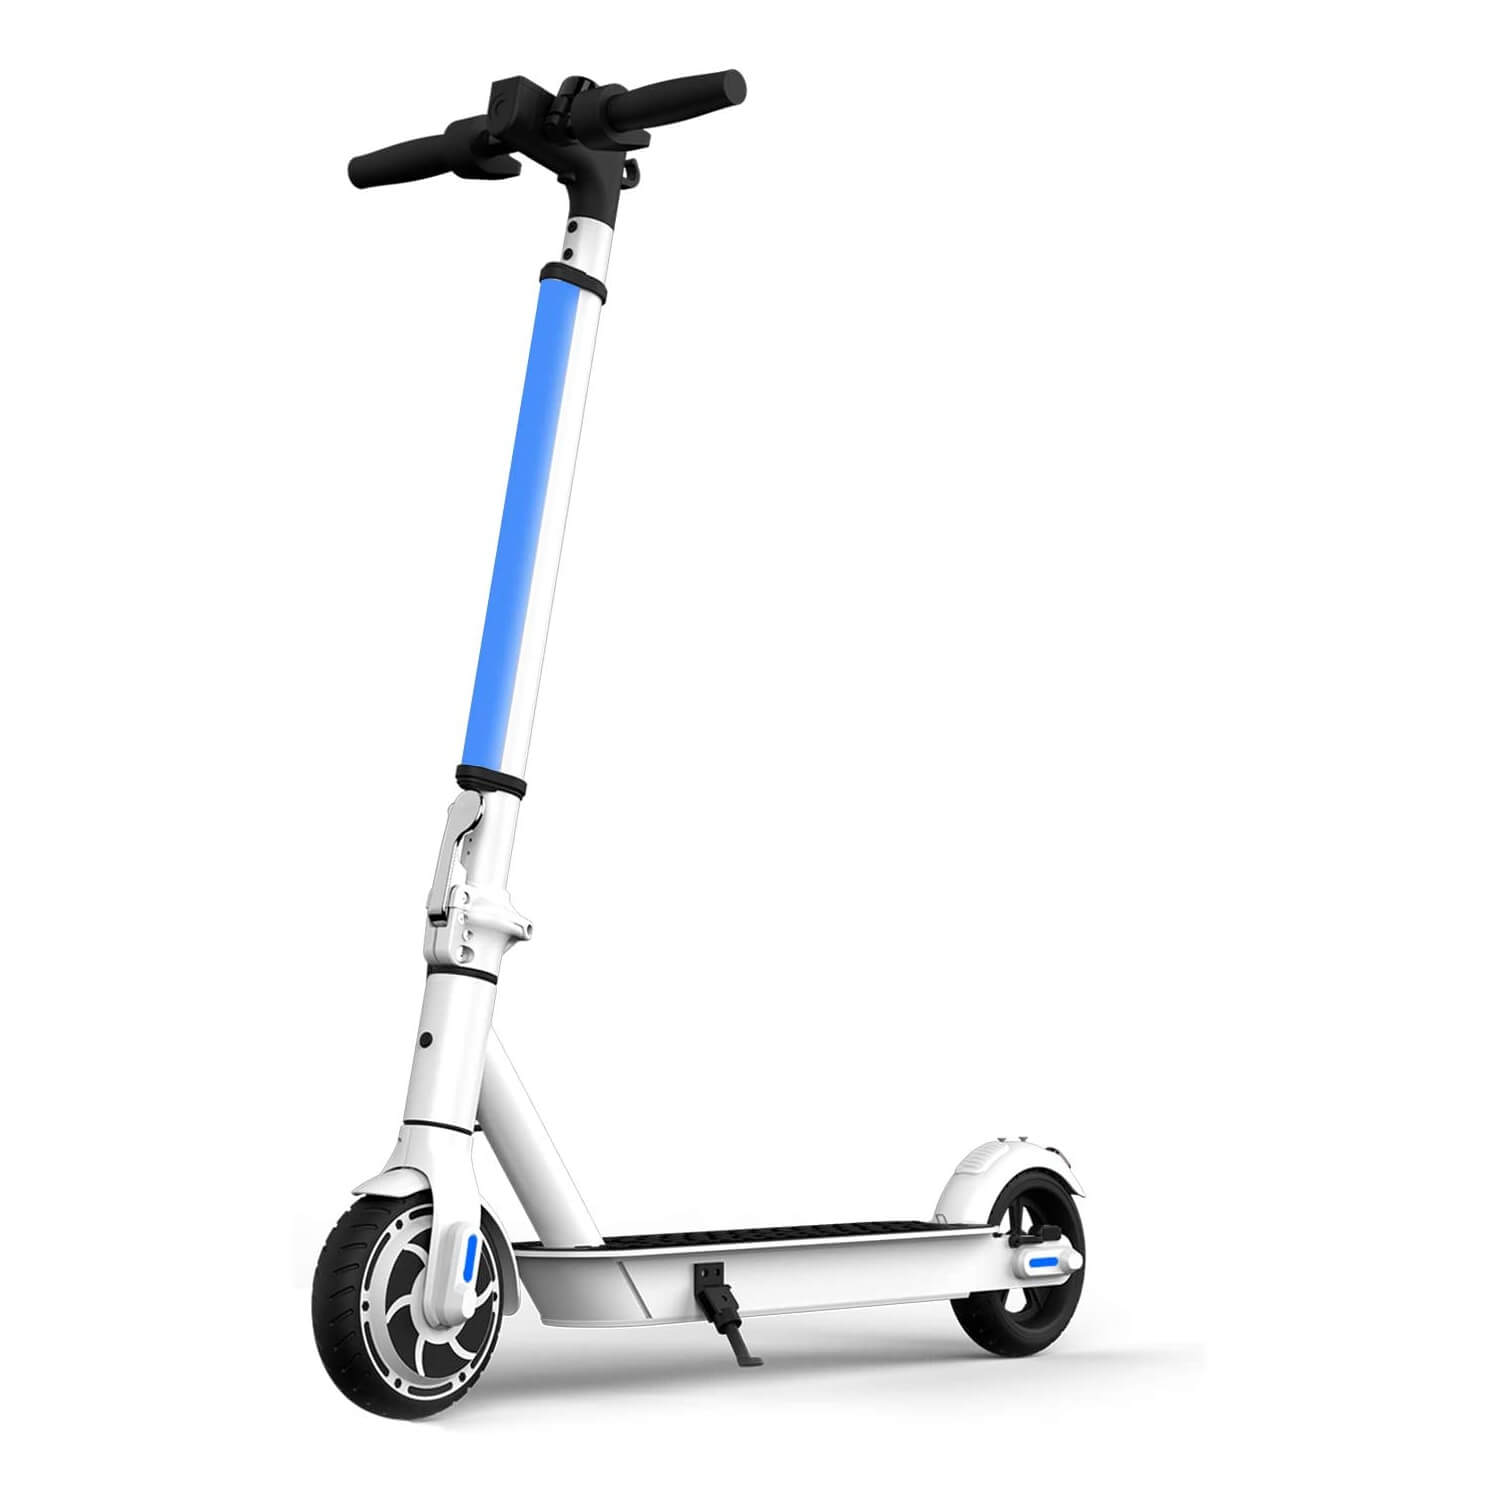 Hiboy S2 Lite Electric Scooter Review